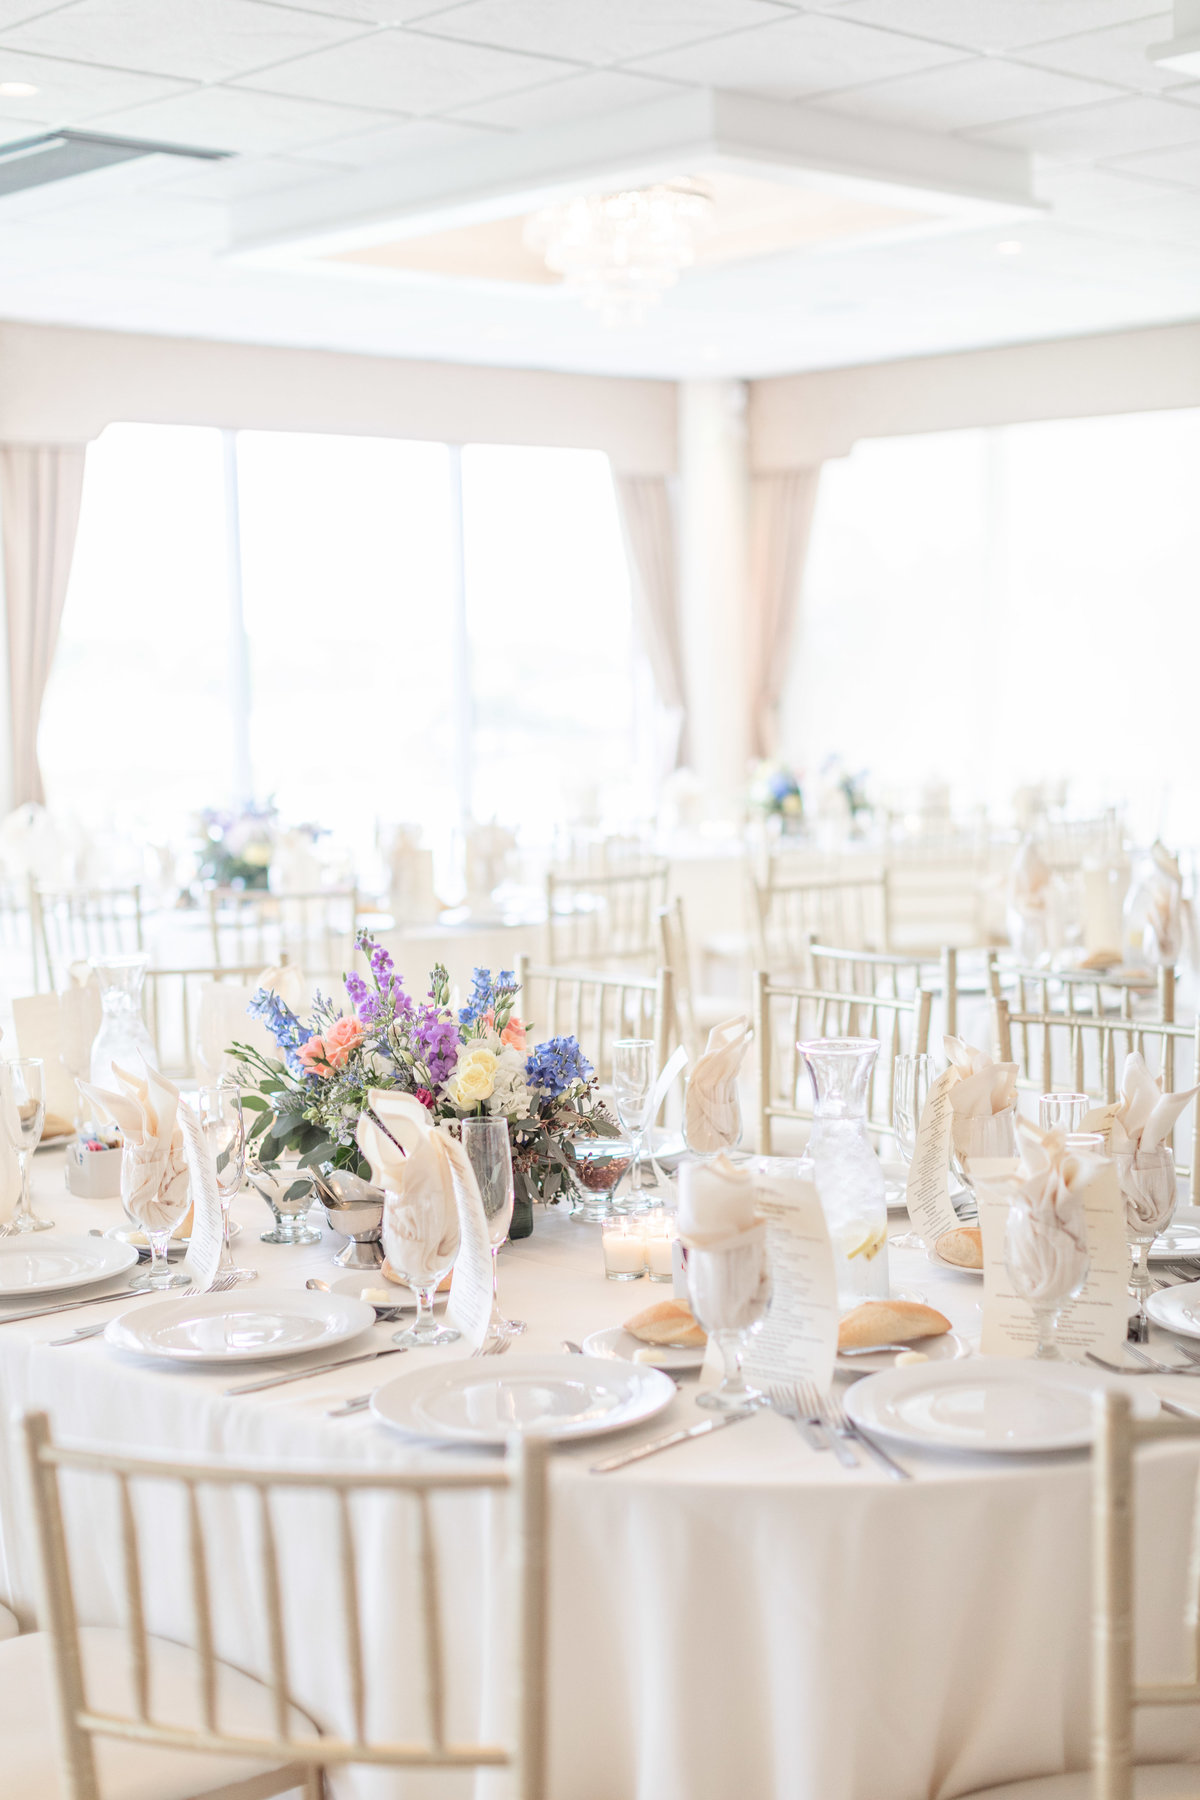 Davenport Mansion wedding reception with white wedding tablescape ideas and colorful wedding table floral arrangements